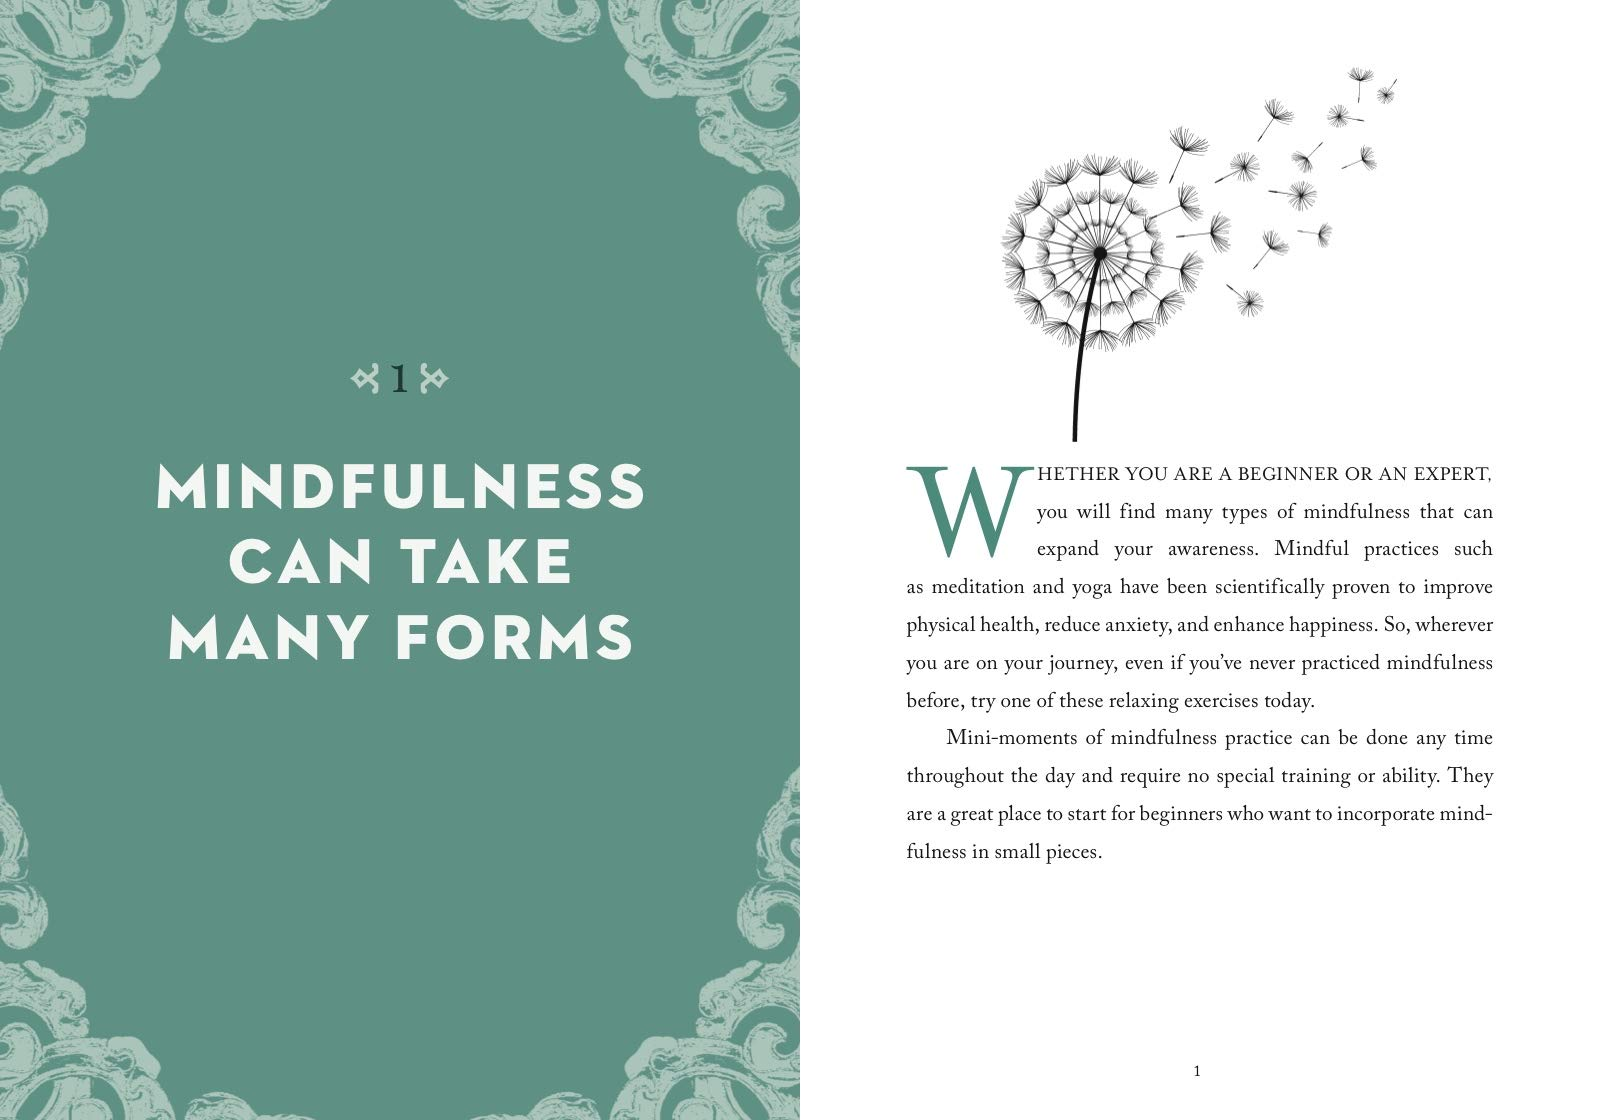 Little Bit of Mindfulness Guided Journal